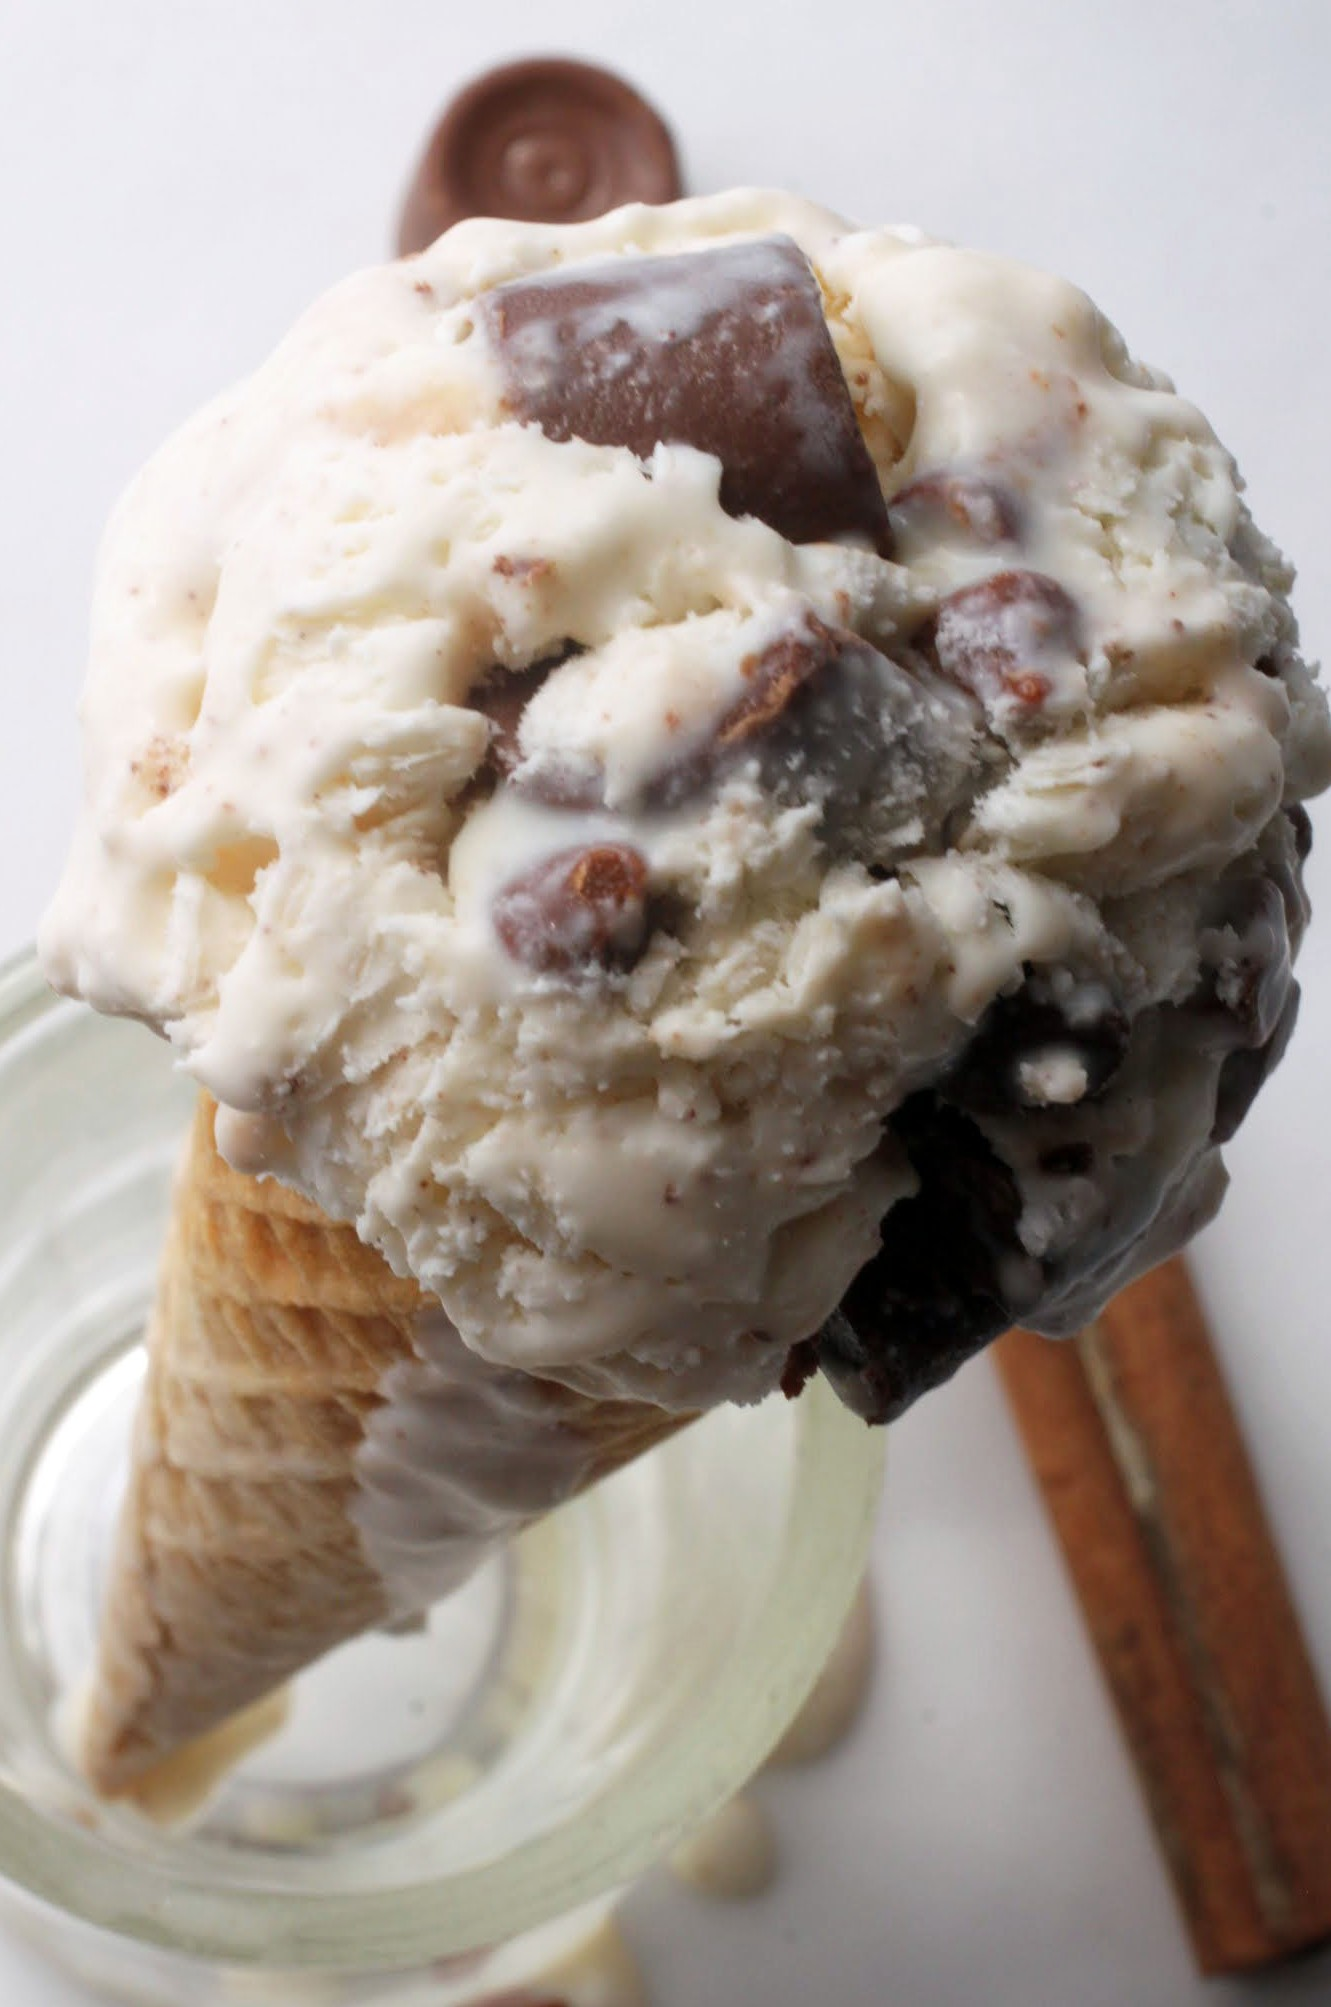 Cinnamon Caramel Chocolate Chunk Ice Cream